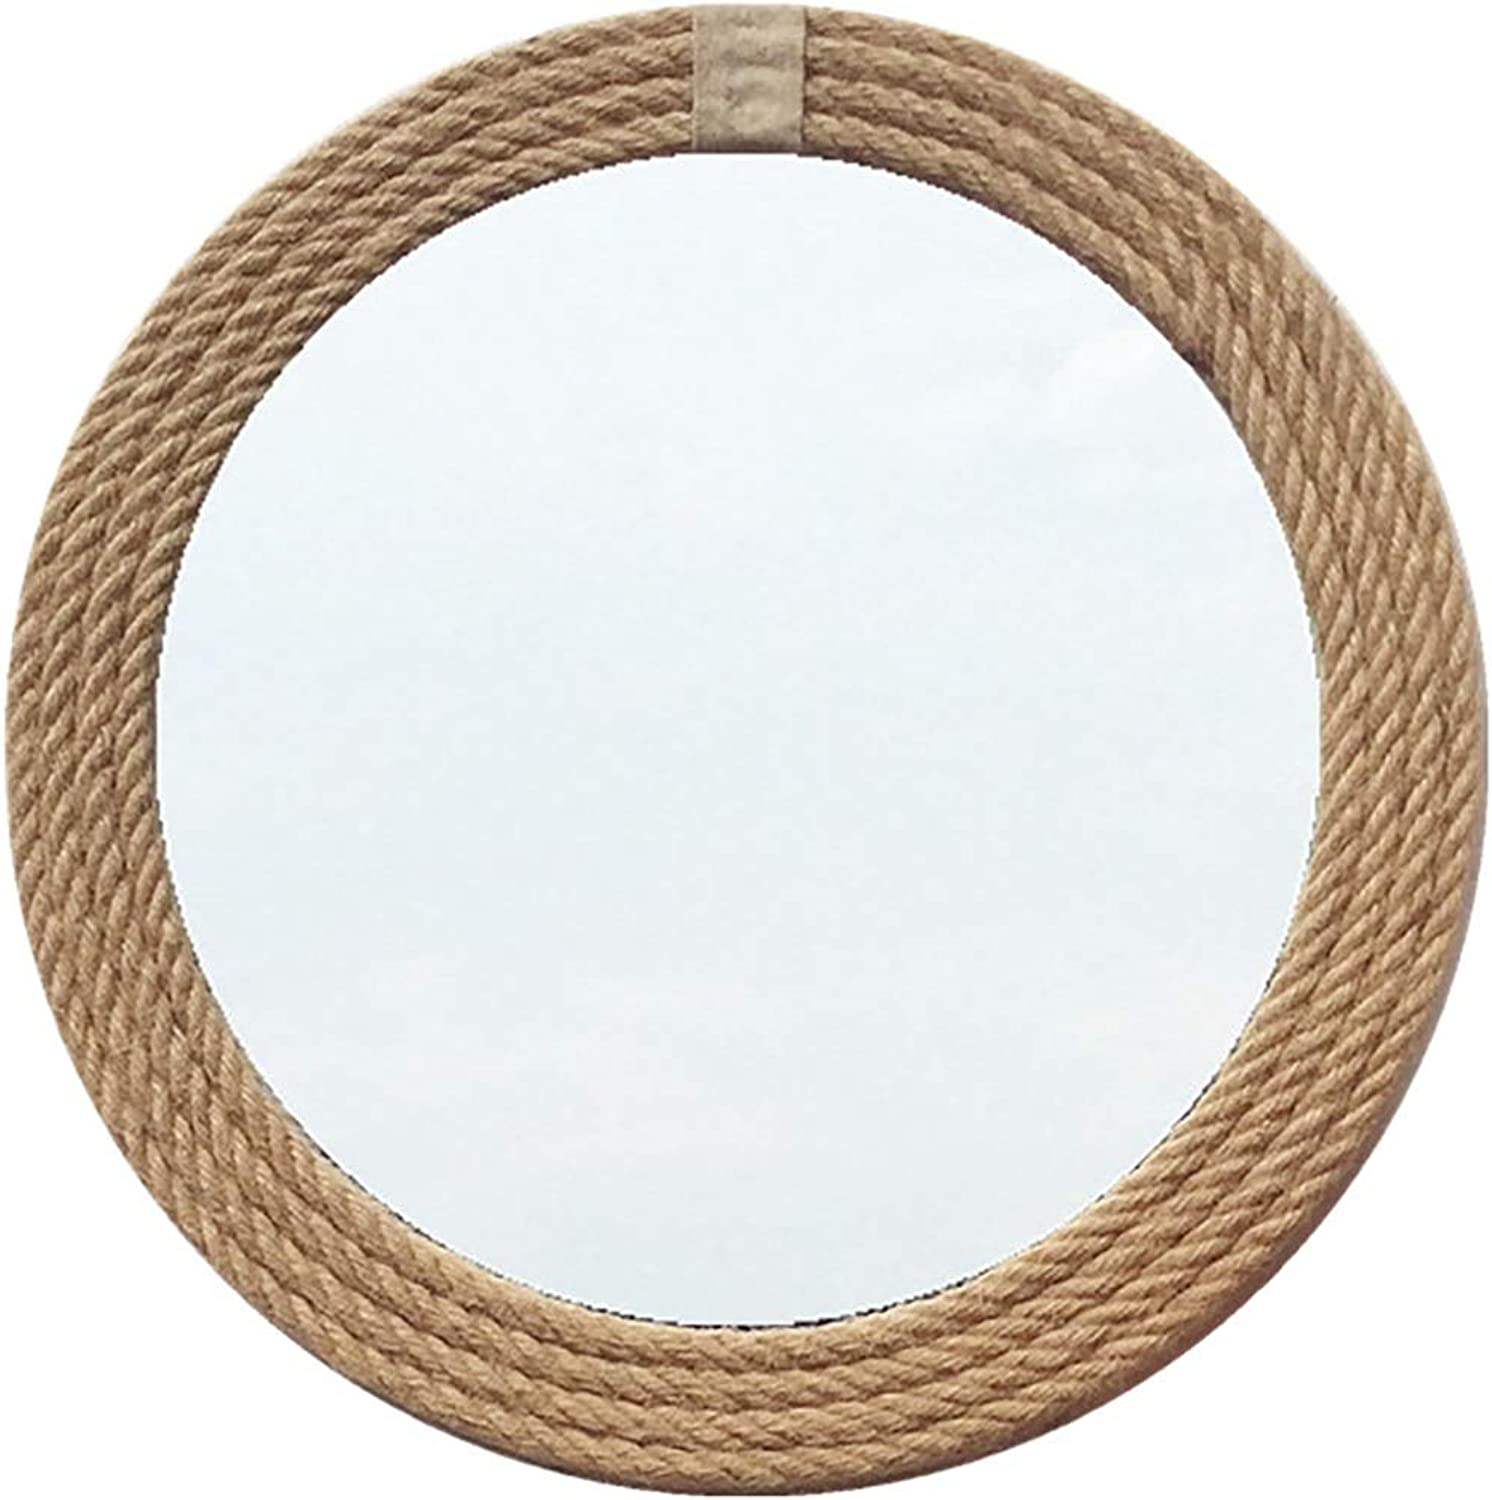 GUOWEI Mirror Wall-Mounted Floating Bathroom Decoration High Definition Wooden Rope Framed Makeup Rustic Circular, 4 Sizes (color   Khaki, Size   Diameter-30cm)